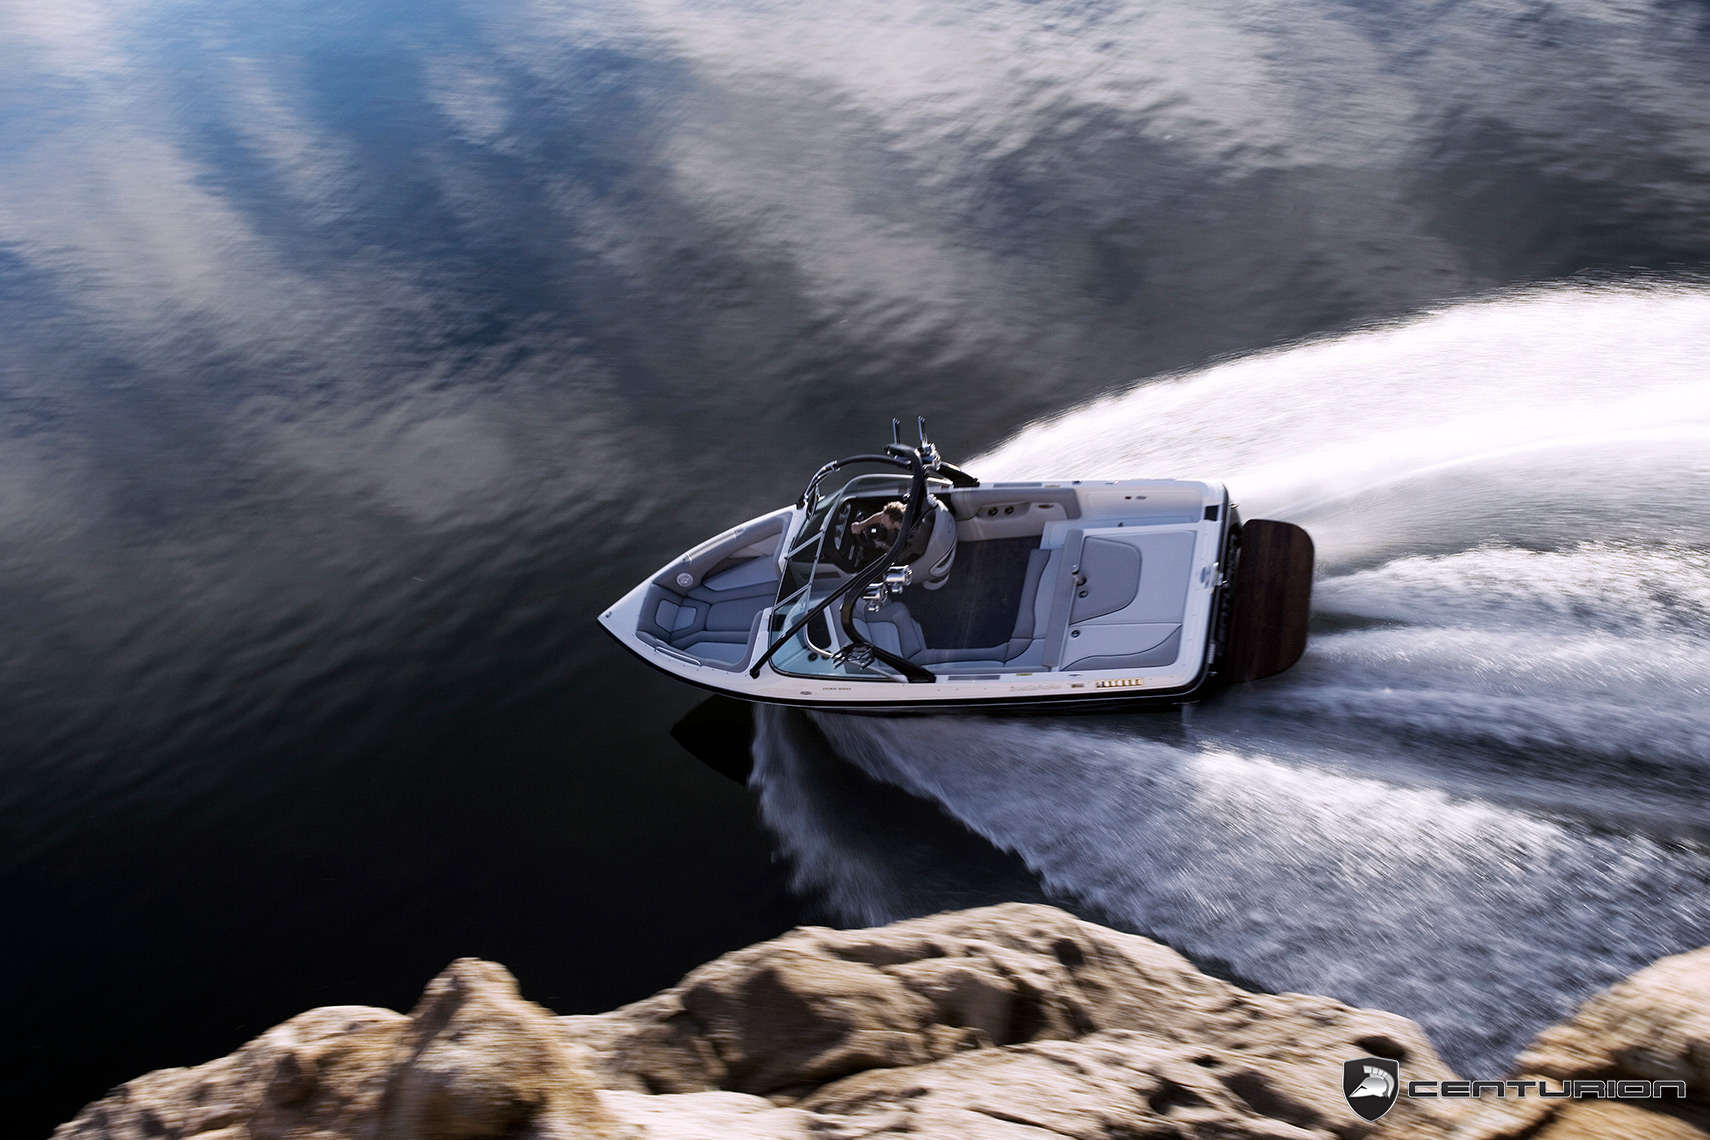 CENTURIONBOATS_WC7X6768